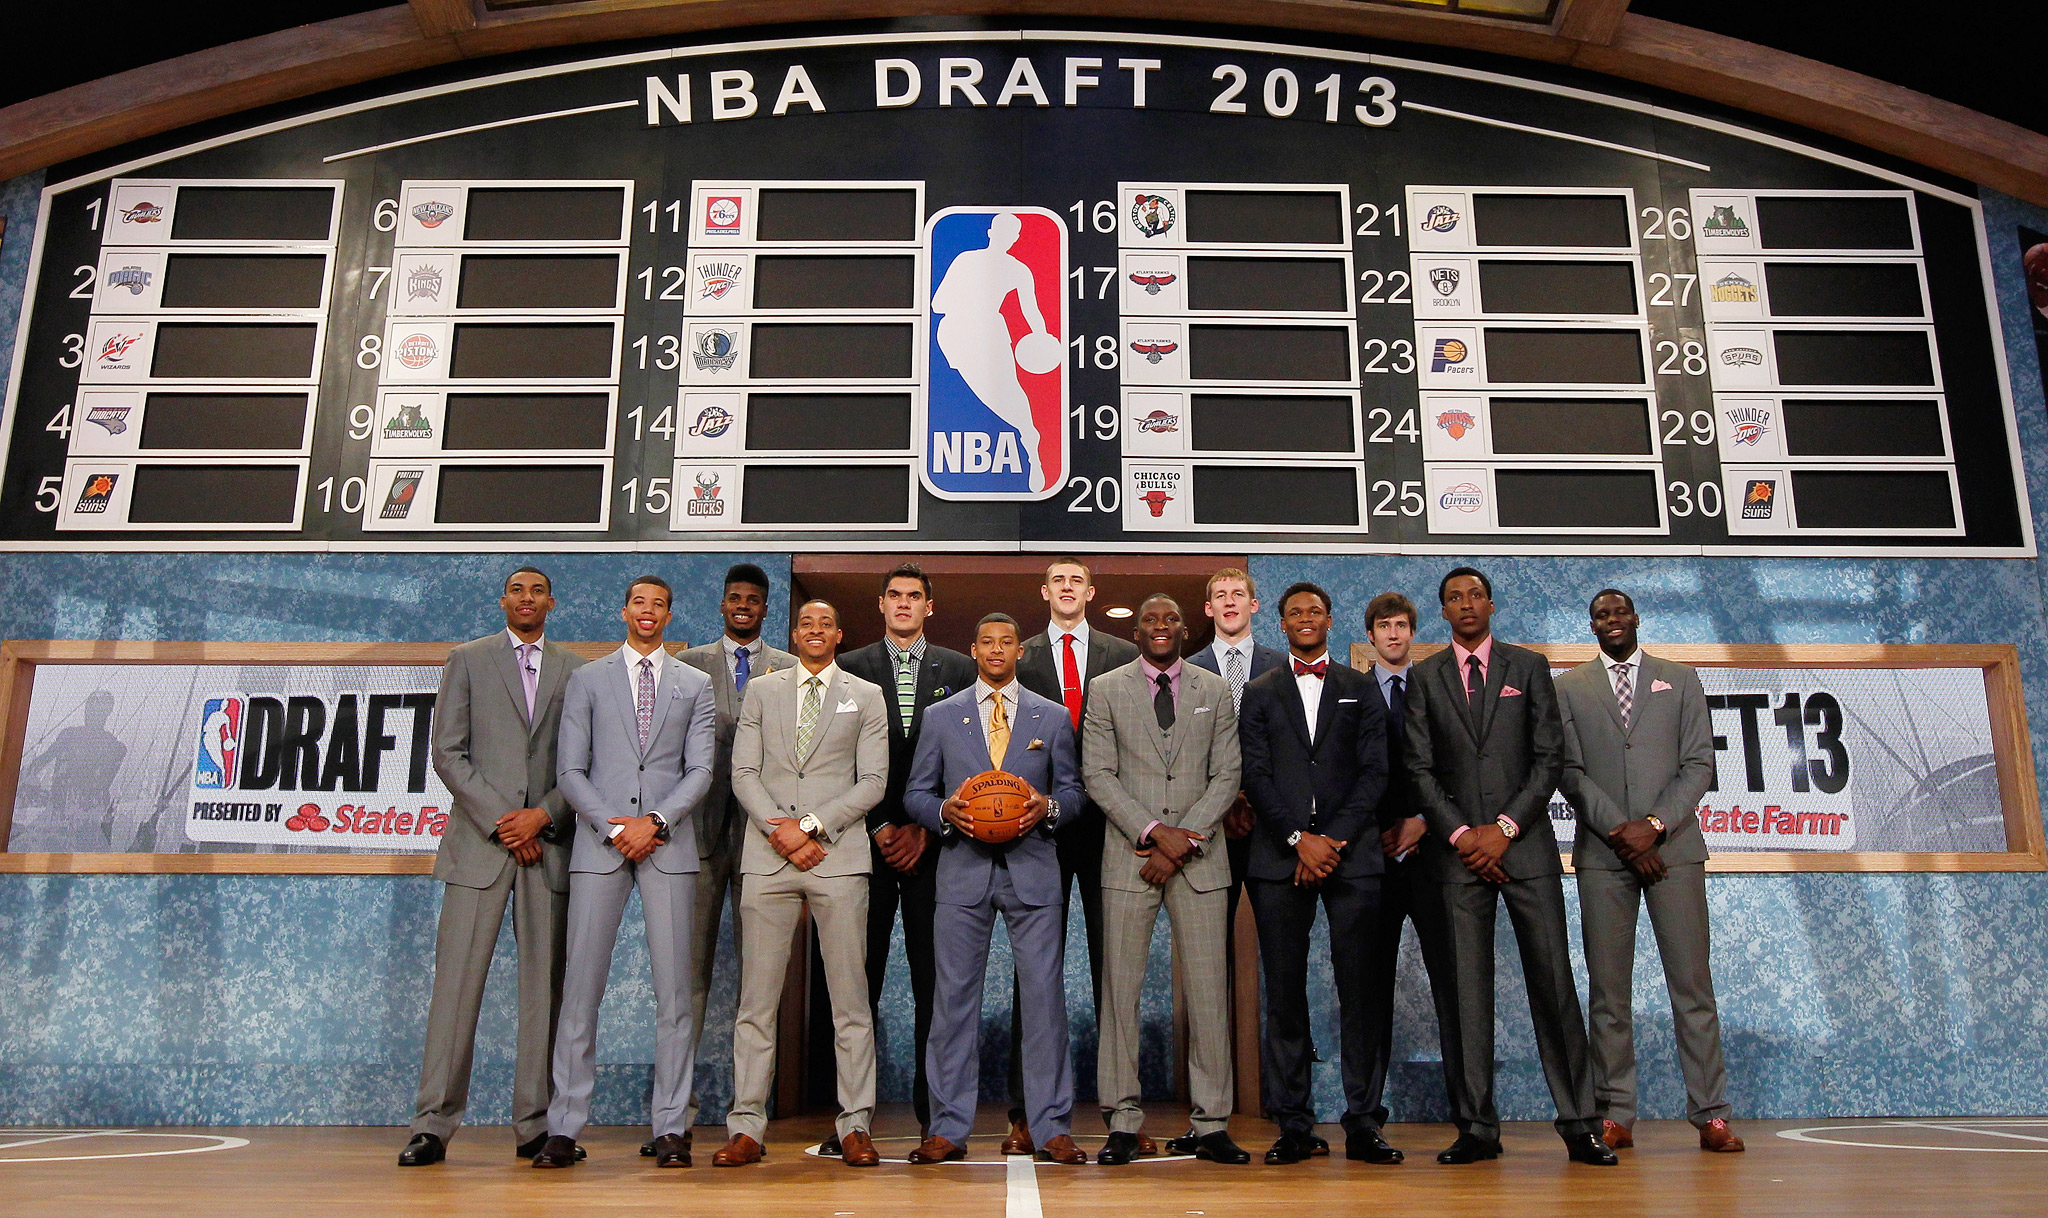 Nba draft time and date in Perth